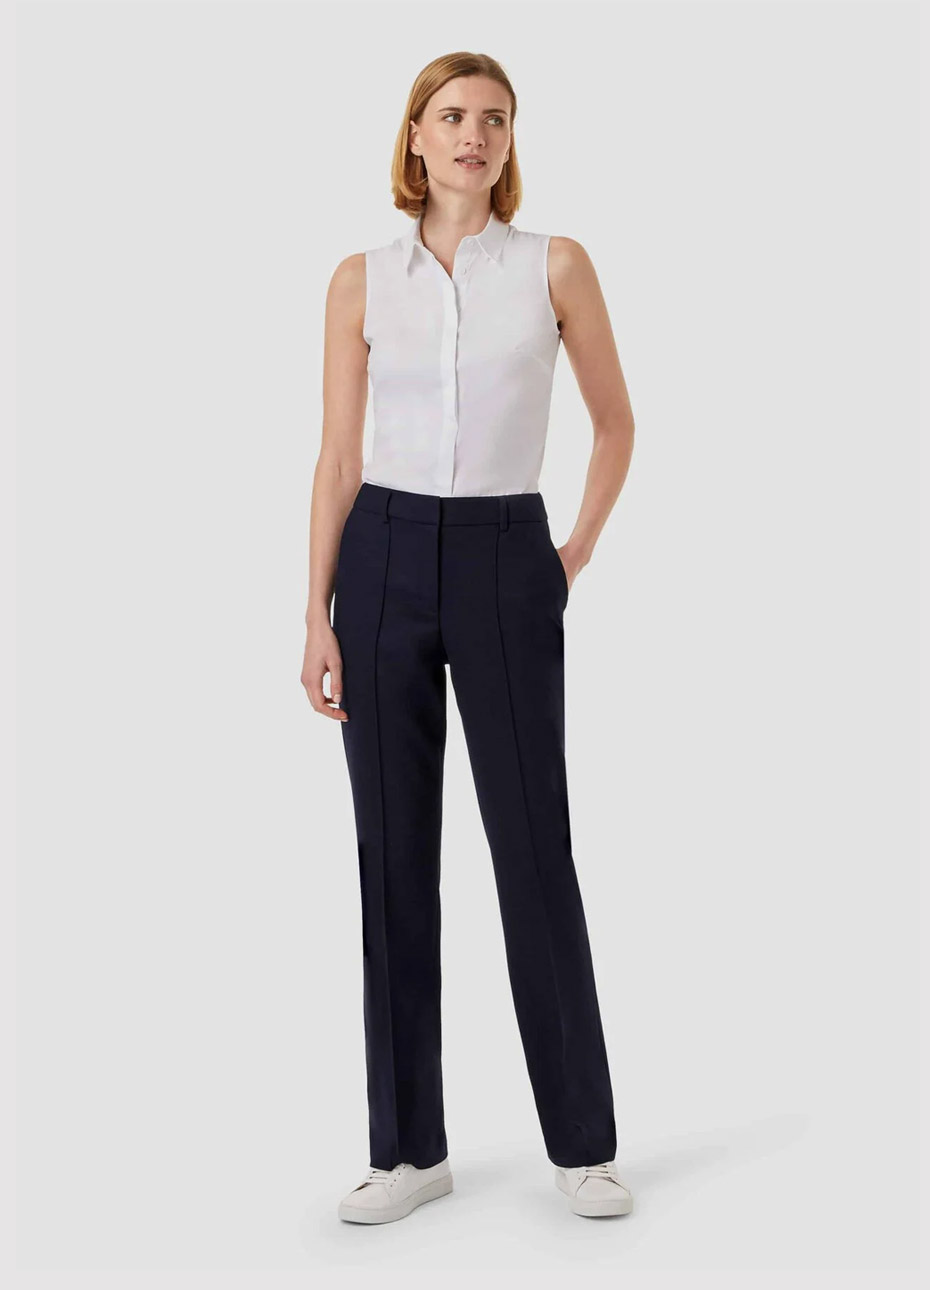 Sleeveless work blouse in white worn with black straight leg trousers and white trainers from Hobbs.